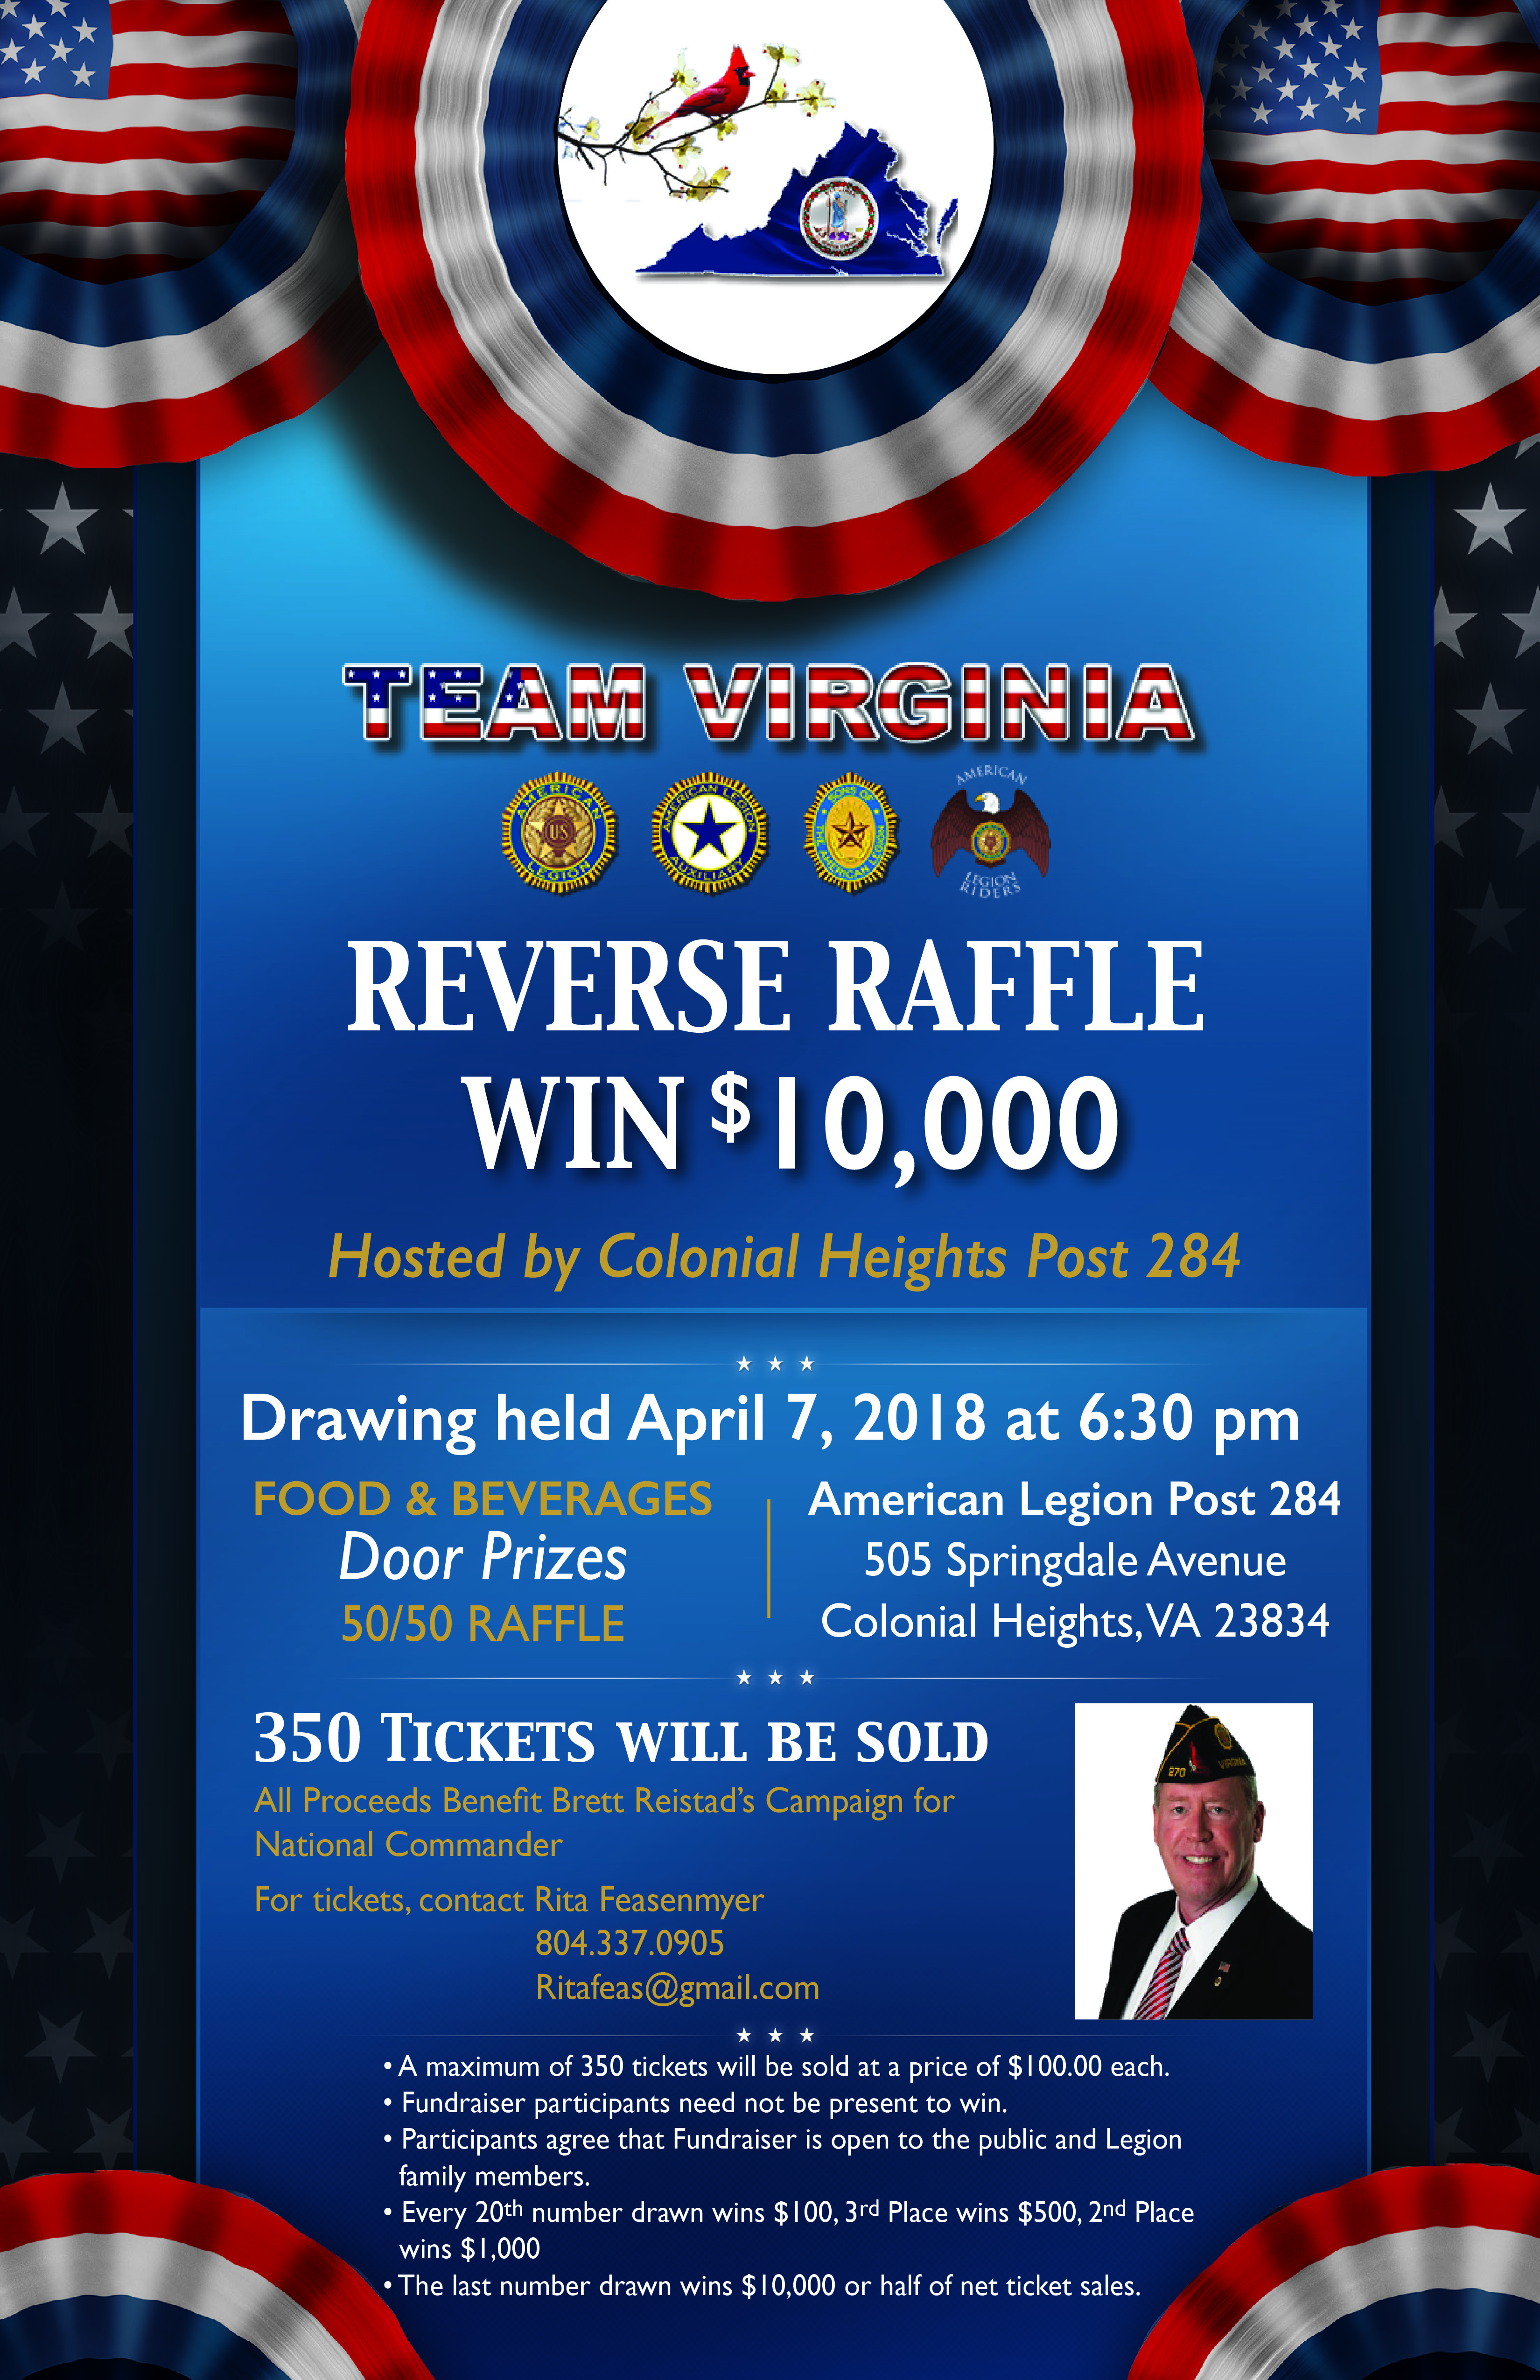 reverse raffle flyer for leading candidate for national commander